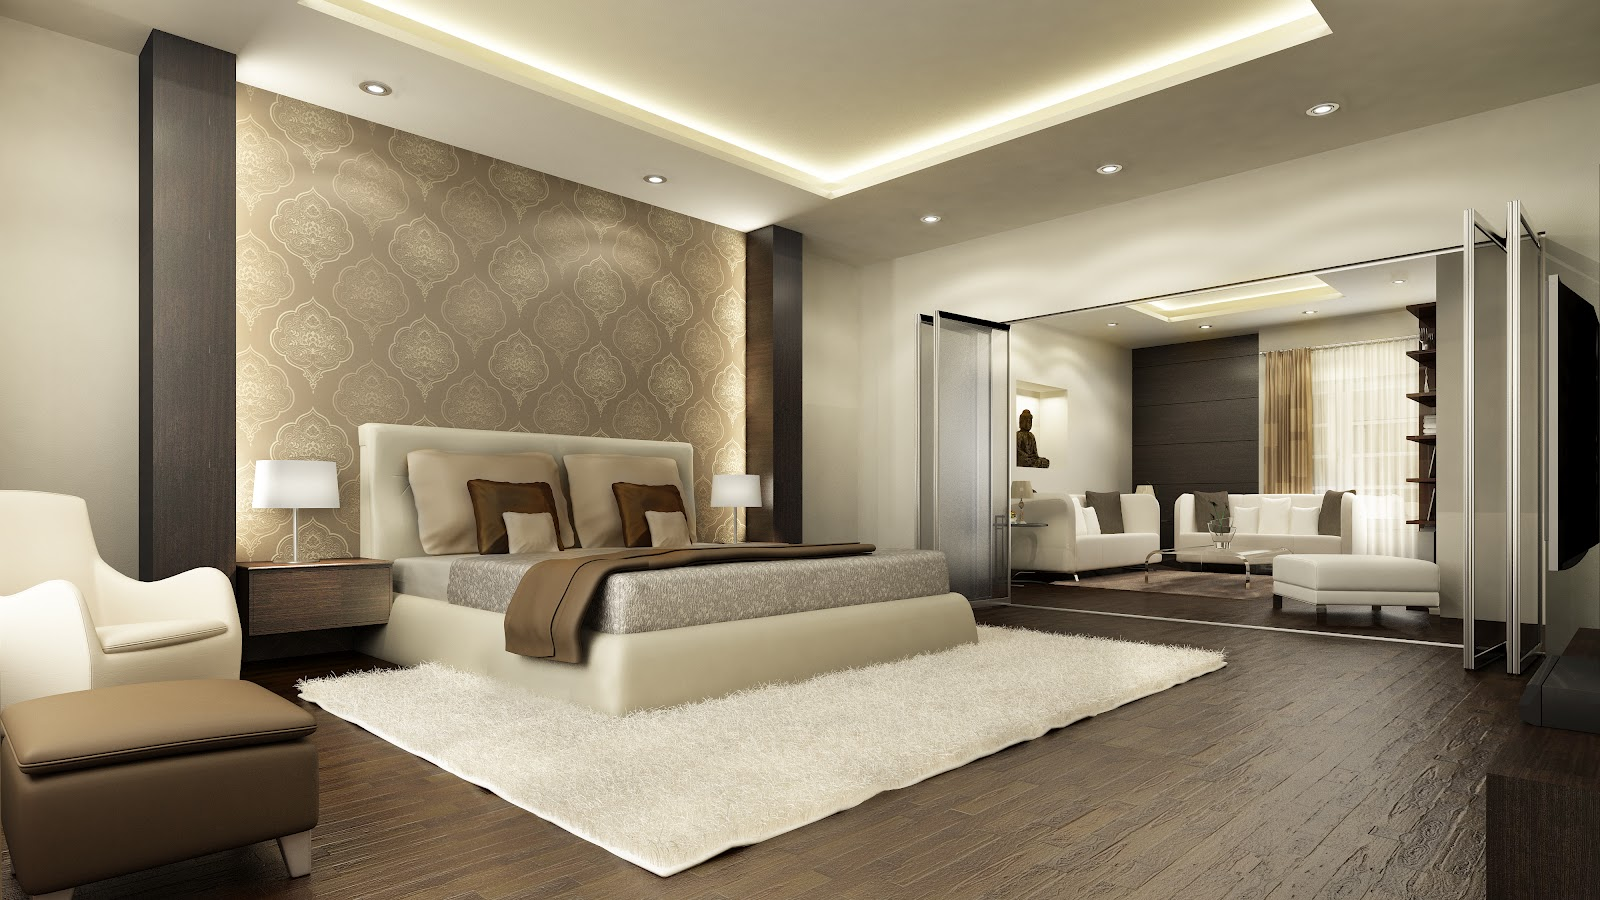 Bedroom design gallery for inspiration the wow style - Interior design for living room and bedroom ...